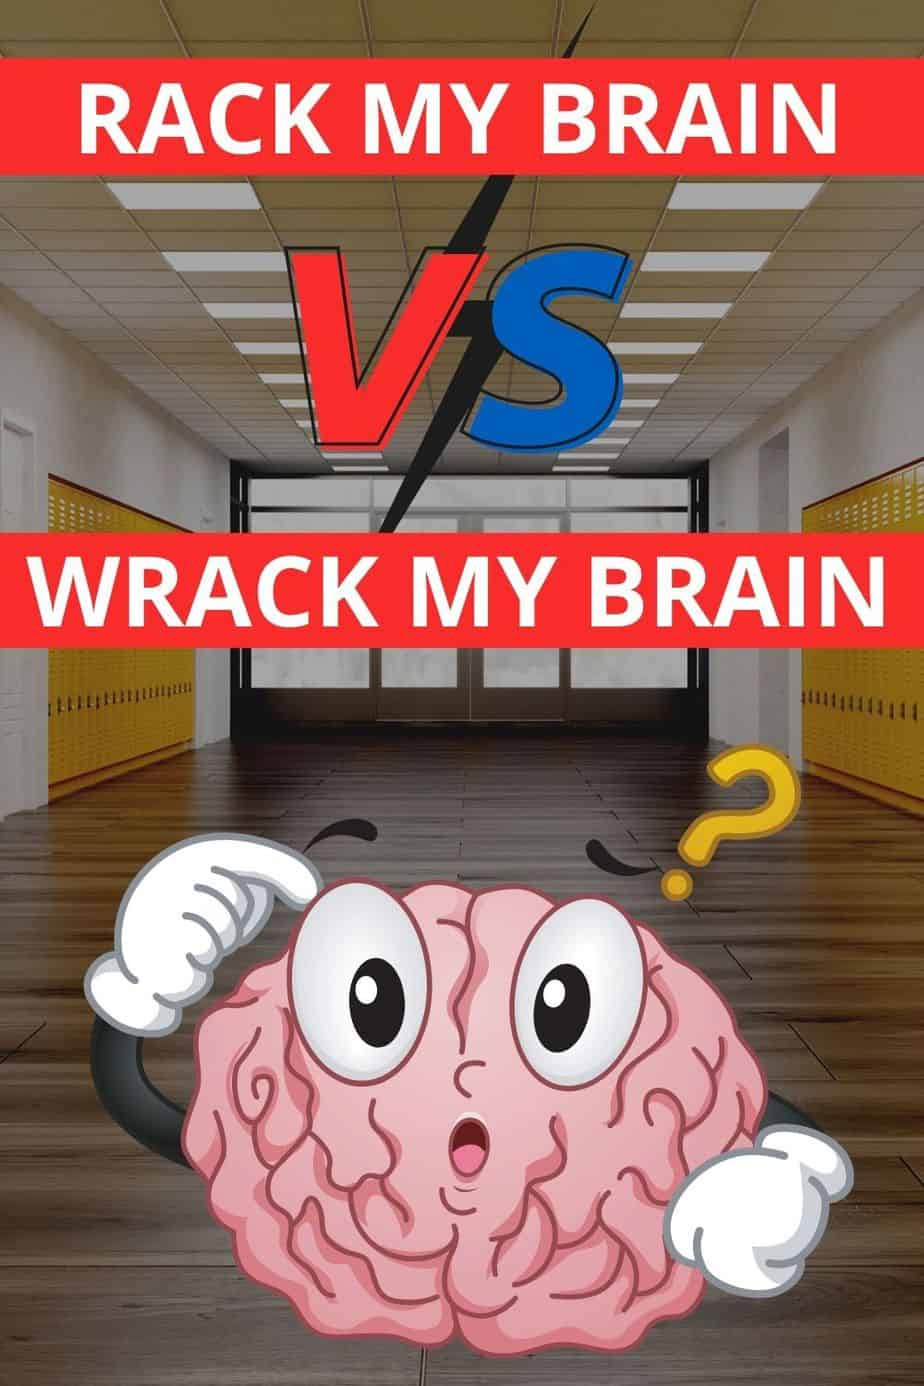 Racking my Brain vs. Wracking my Brain